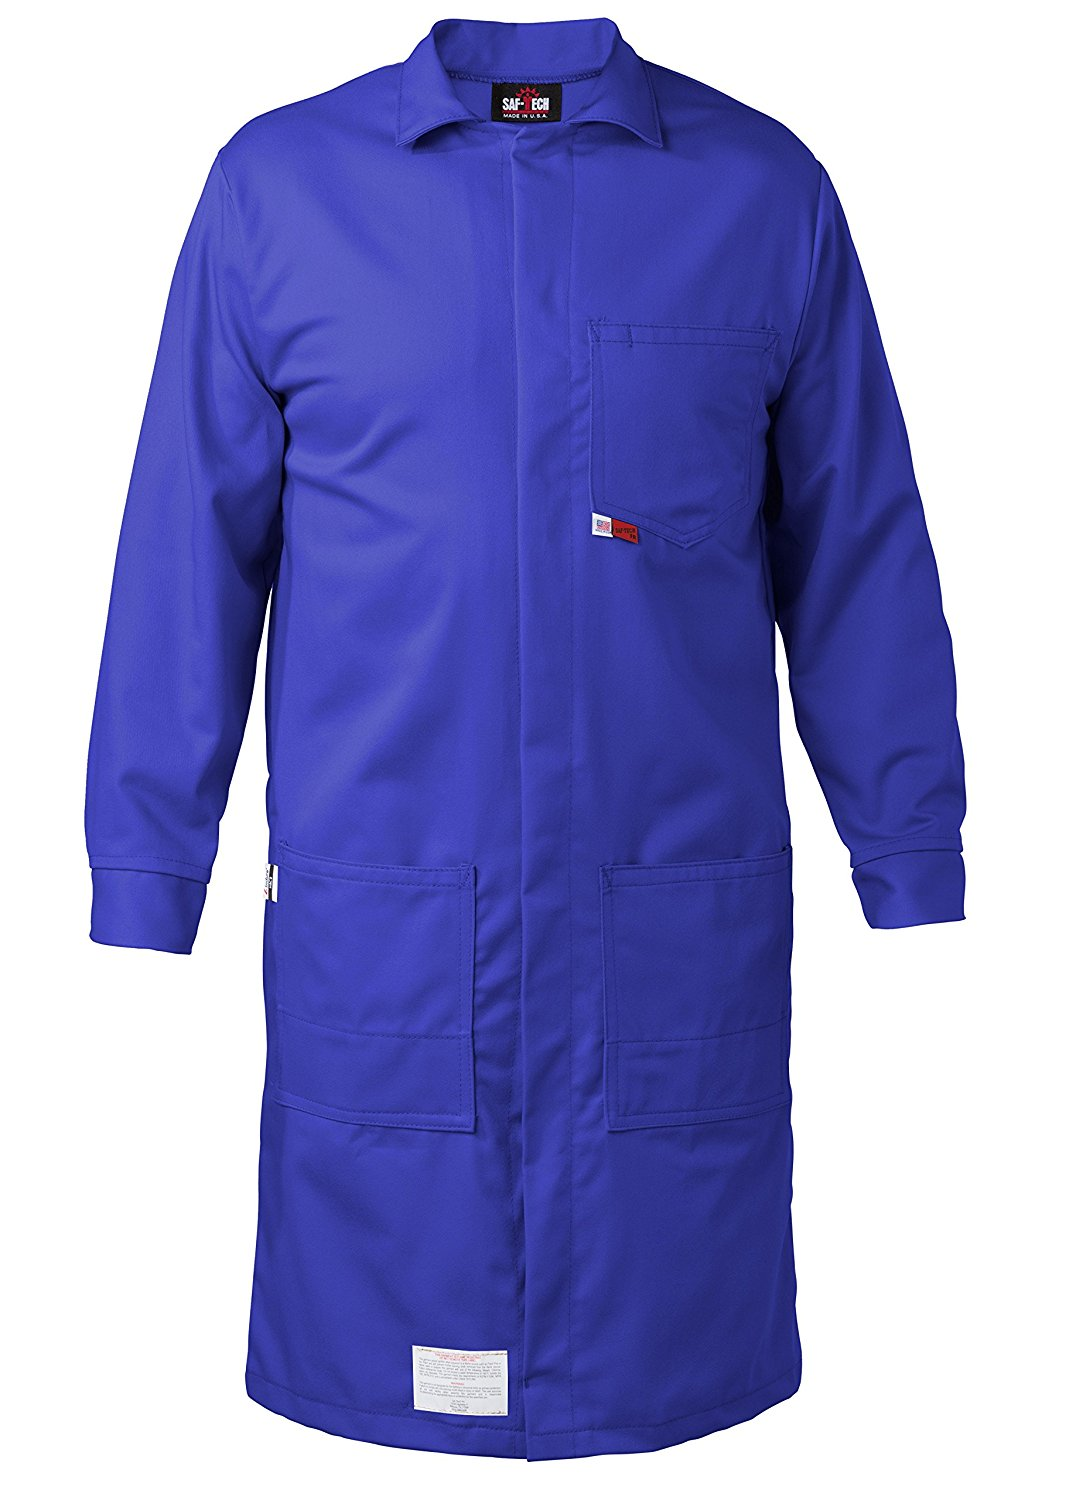 ROYAL - 2X - FR LAB COAT - 6oz. NOMEX III3 Flame Resistant Fabric - Lab or Classroom Ready - HRC 1 - APTV= 5.7 cal/m2 - MADE IN THE U.S.A.